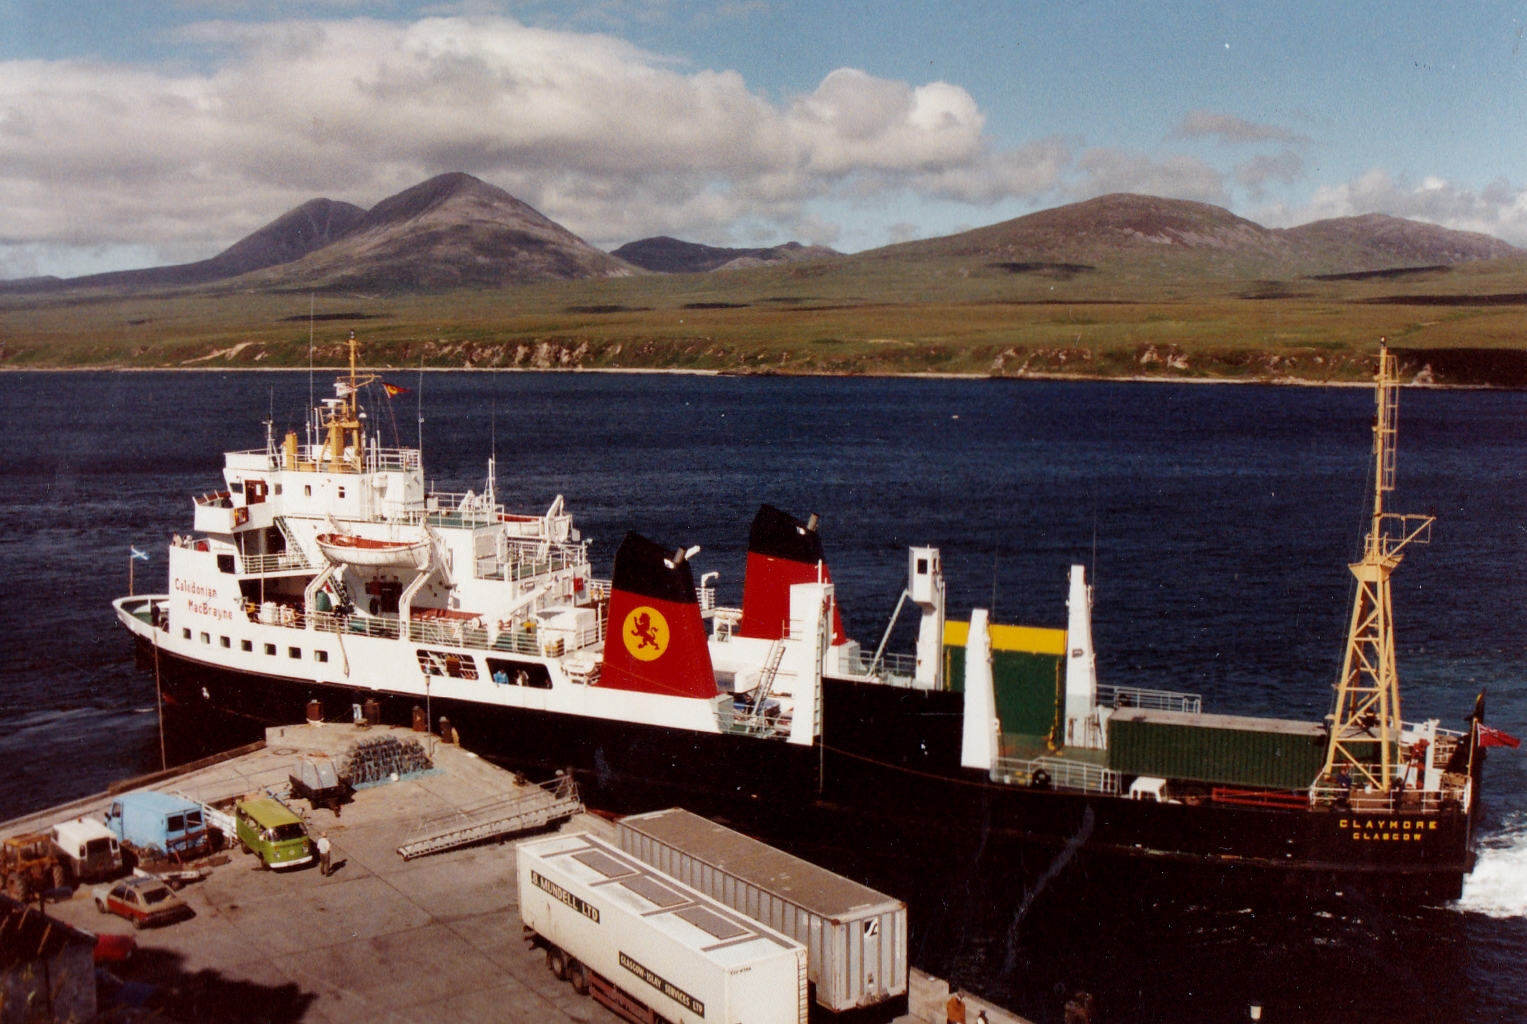 Claymore at Port Askaig (Jim Aikman Smith)